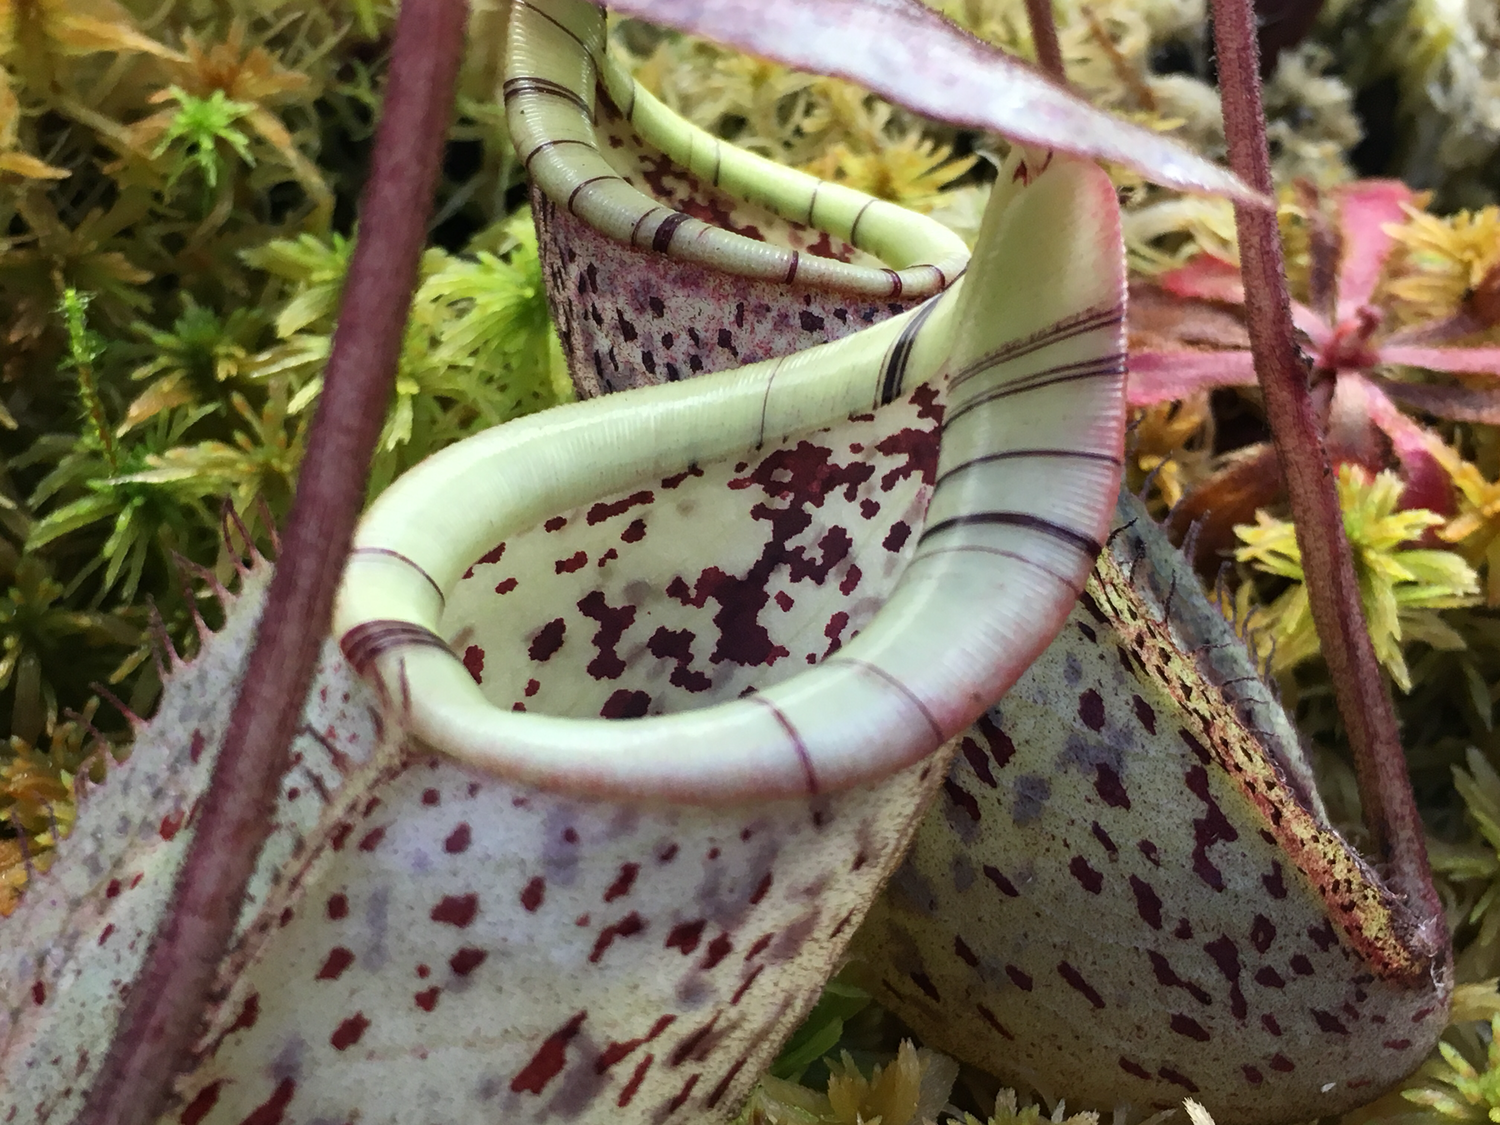 Nepenthes burbidgeae (From my Personal collection)